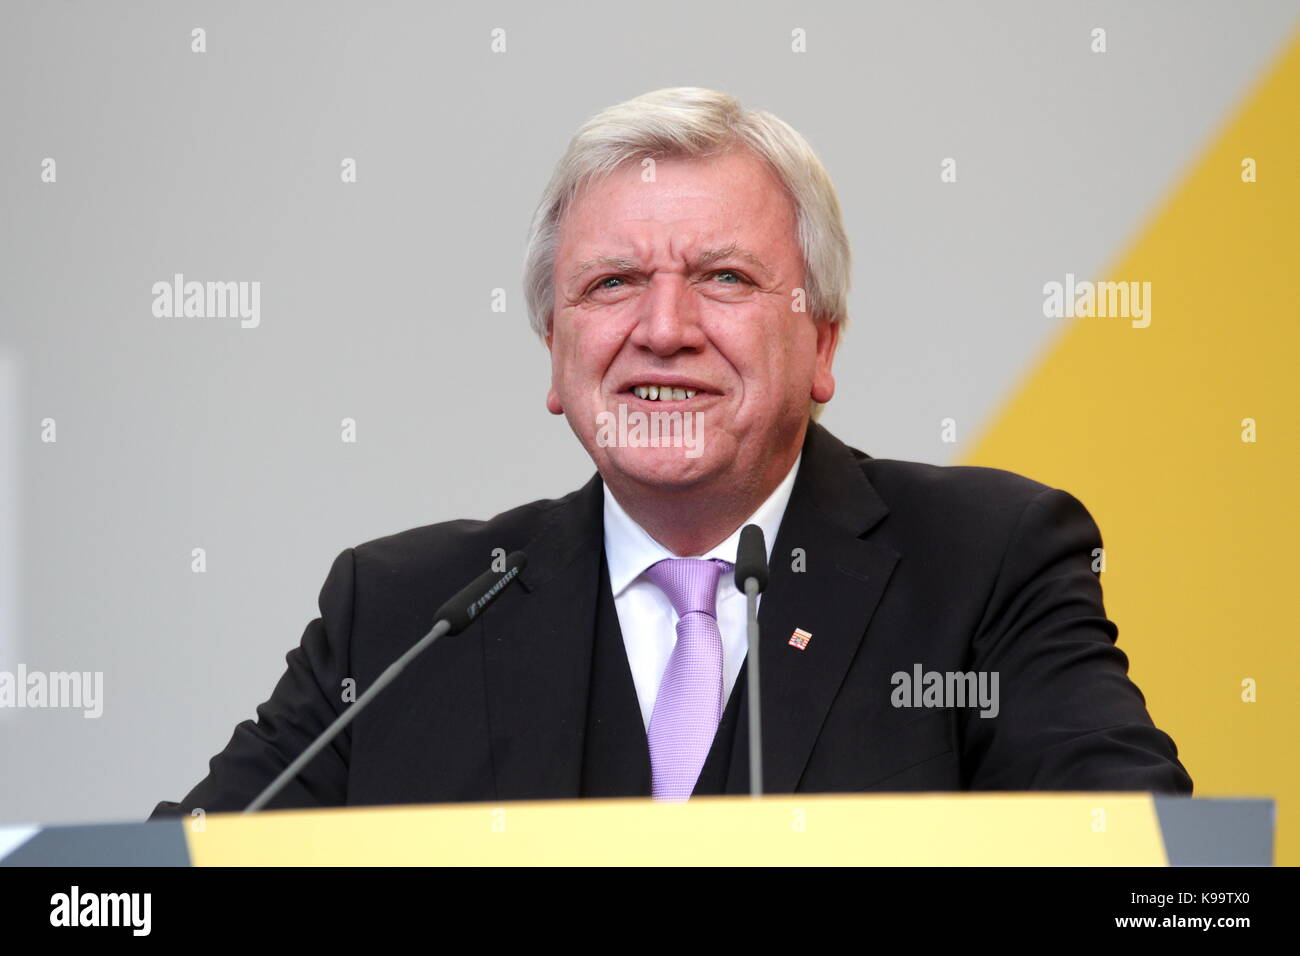 Giessen, Germany. 21st September, 2017. Volker Bouffier, prime minister of german state Hesse, speaks at election - Stock Image